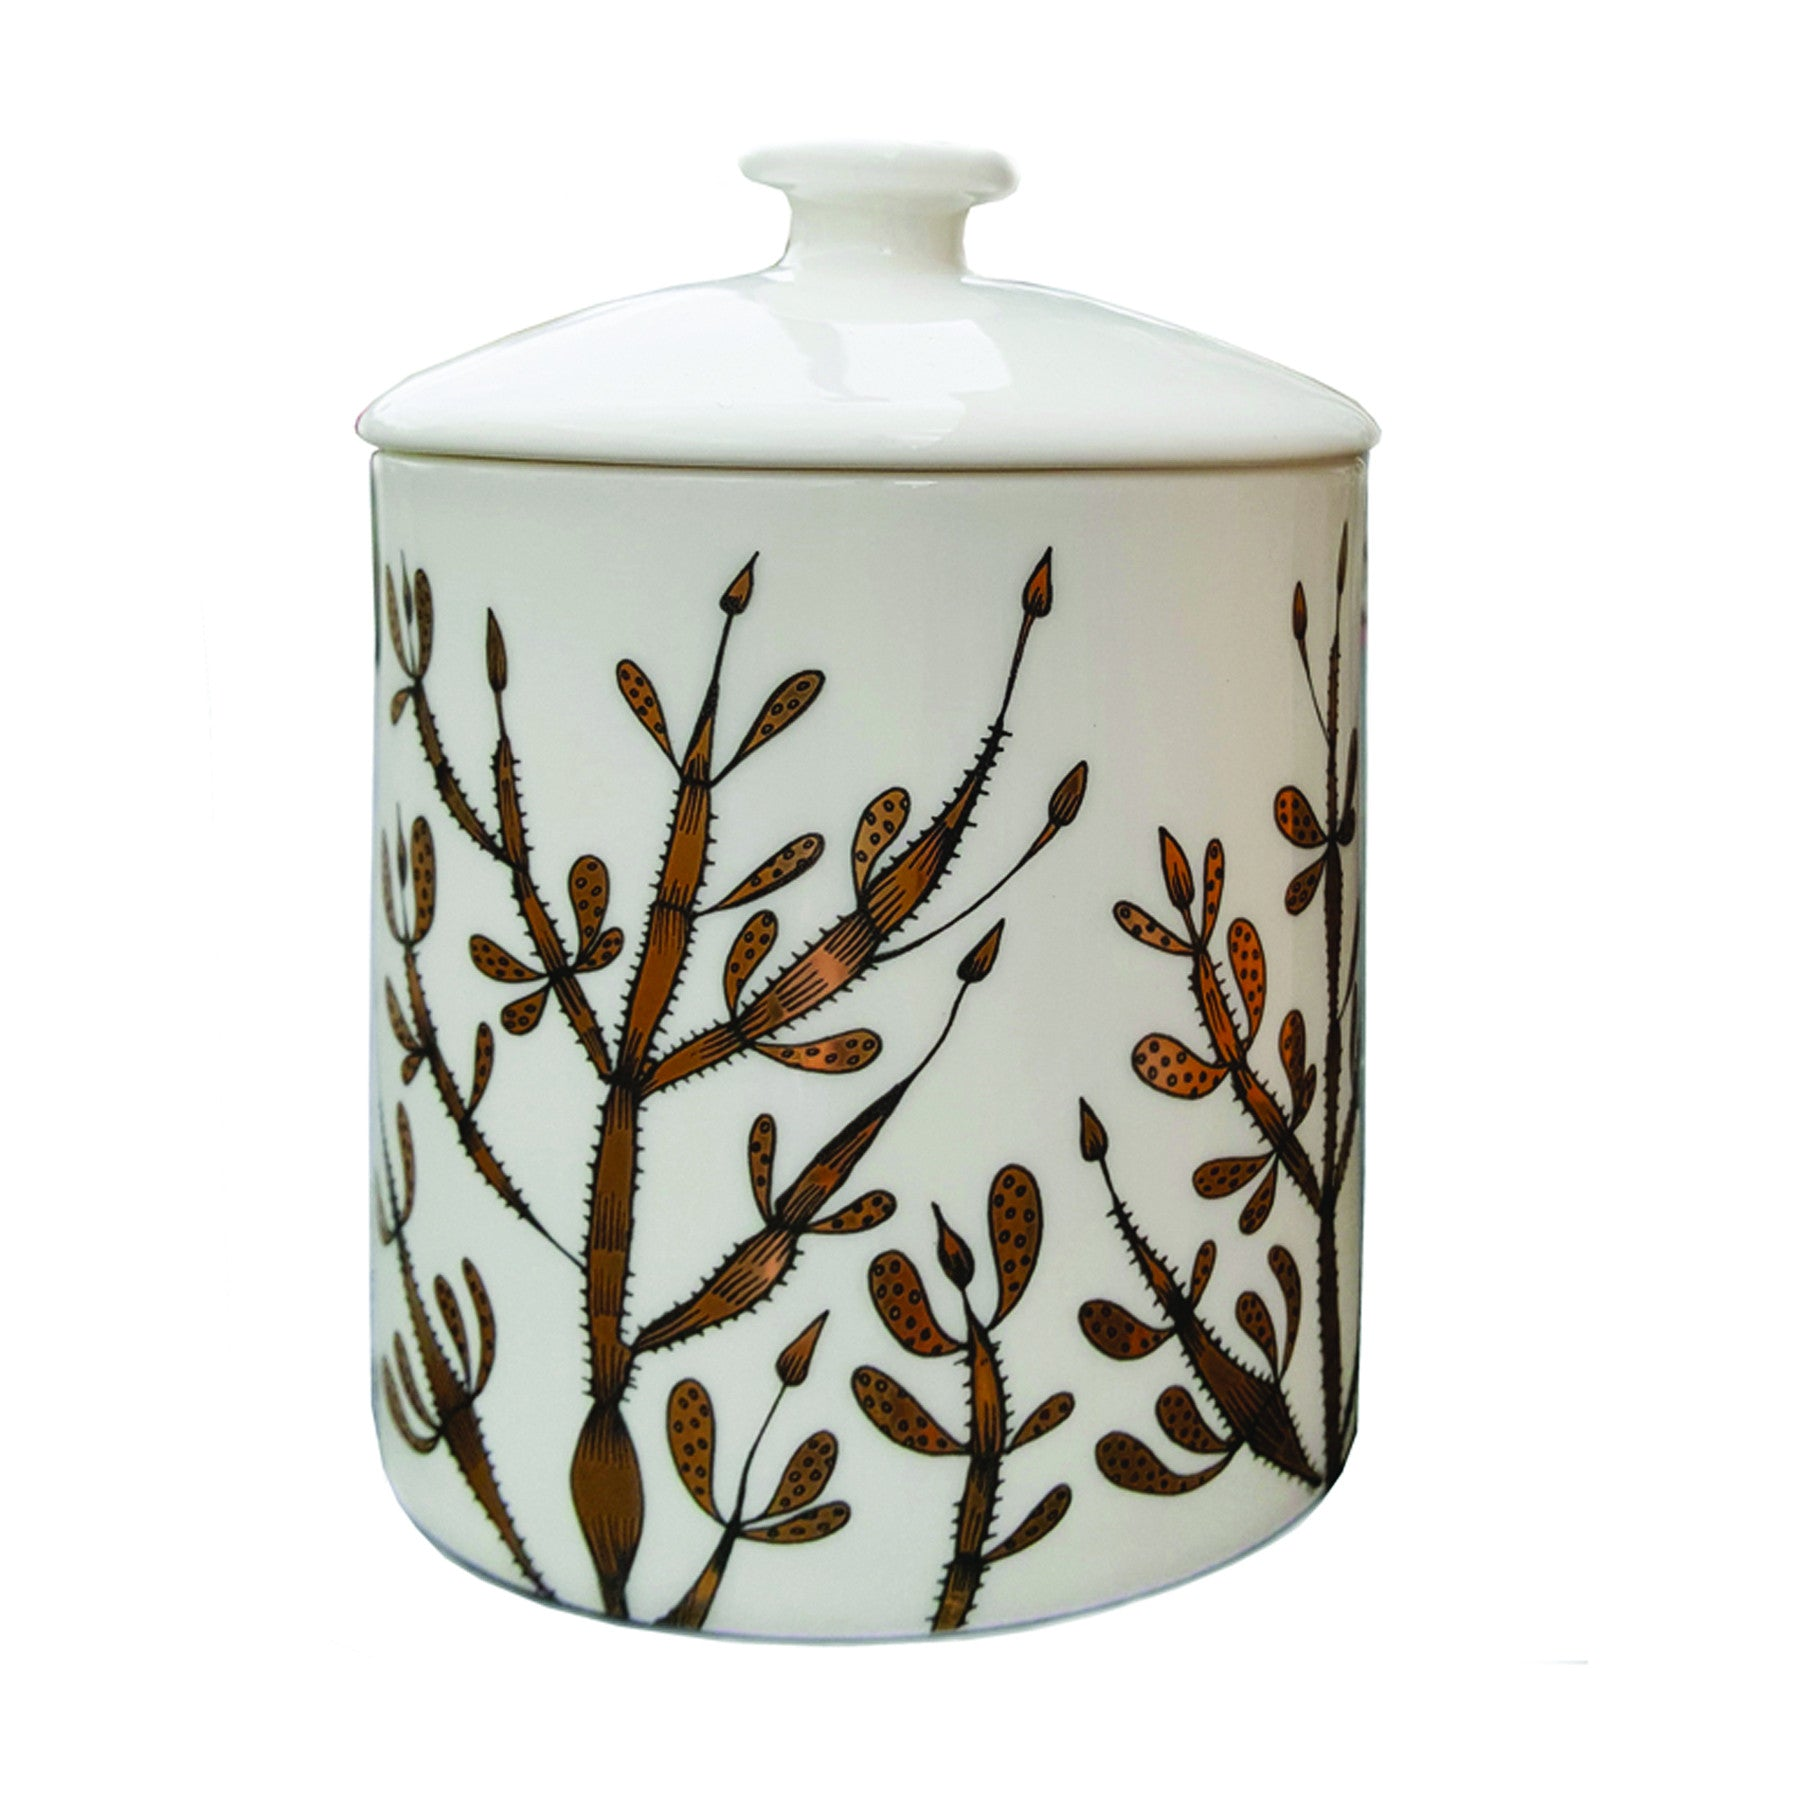 Bone china candle pot with print of seaweed in black and gold